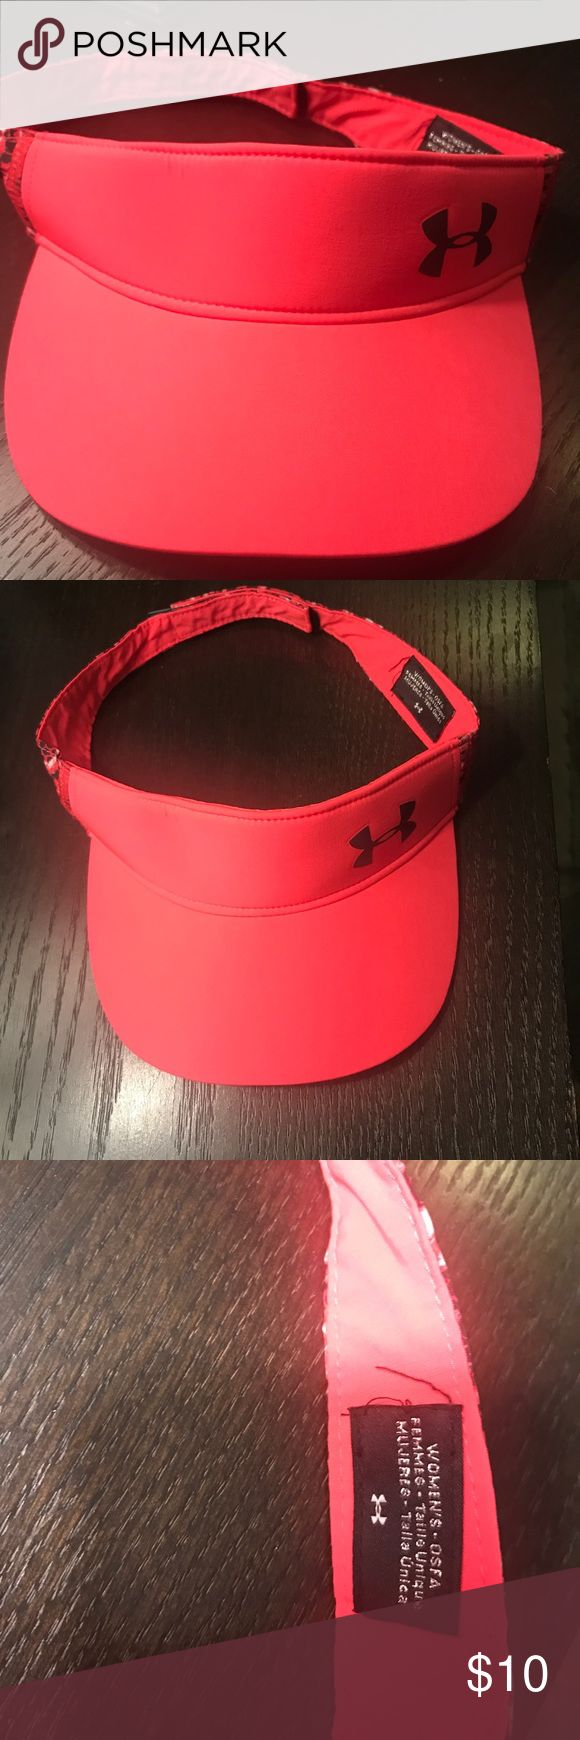 Under Amour woman's visor Worn one time like new woman's visor in bright pink. Smoke-free home.  Bundle three items and save 15%! Under Armour Accessories Hats